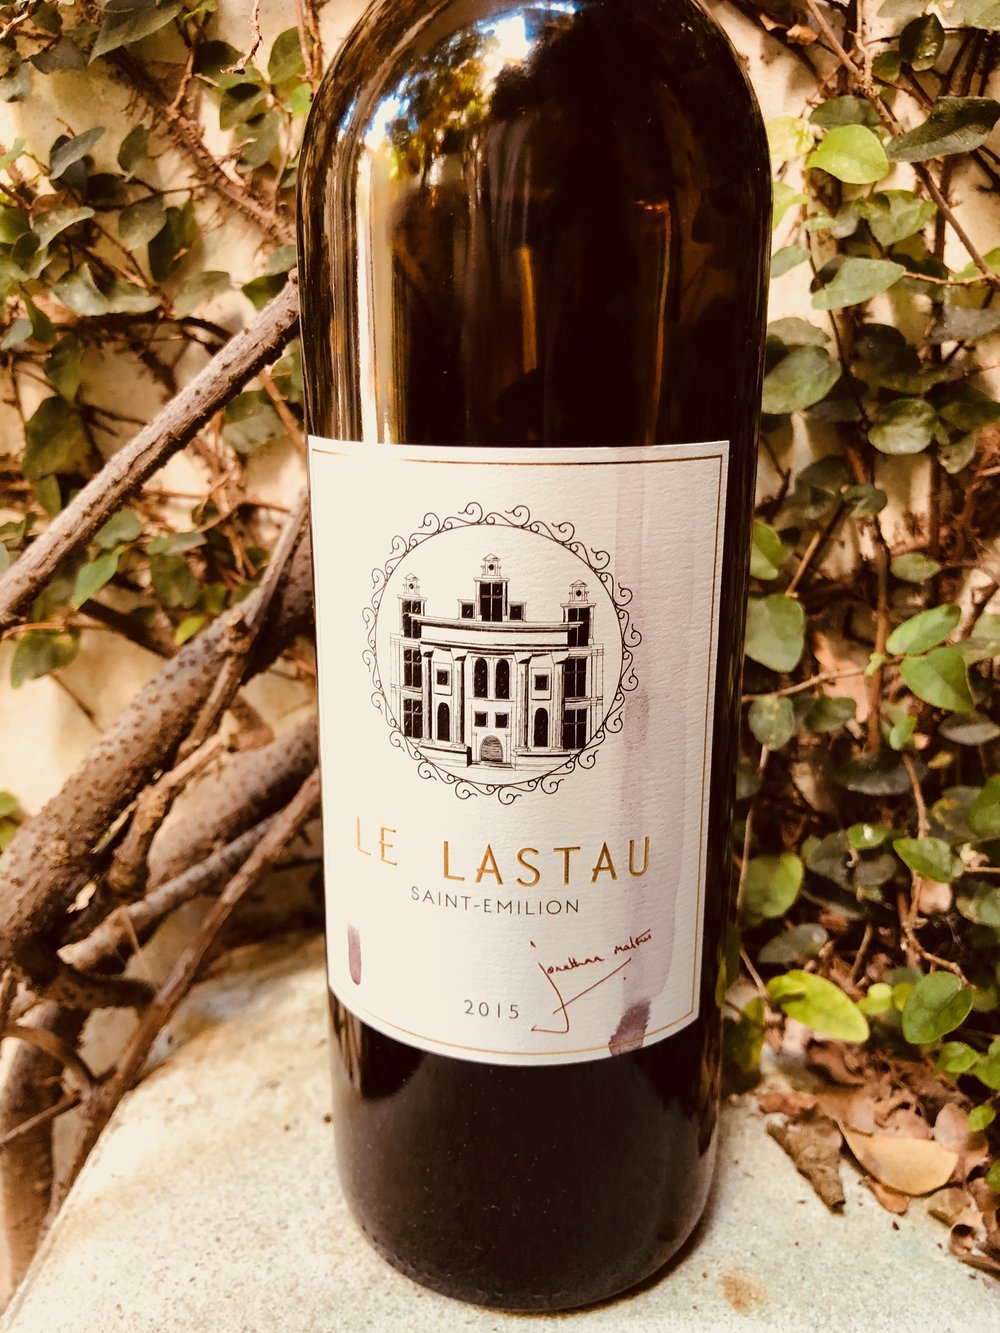 - Jonathan Maltus Le Lastau Saint-Emilion Bordeaux 2015 is a versatile and rich red blend (75% Merlot, 20% Cabernet Franc, 5% Cabernet Sauvignon).Wine the way red wine should be. Reminds us of why we like wine. We will order again.List $40 Angel Price $22